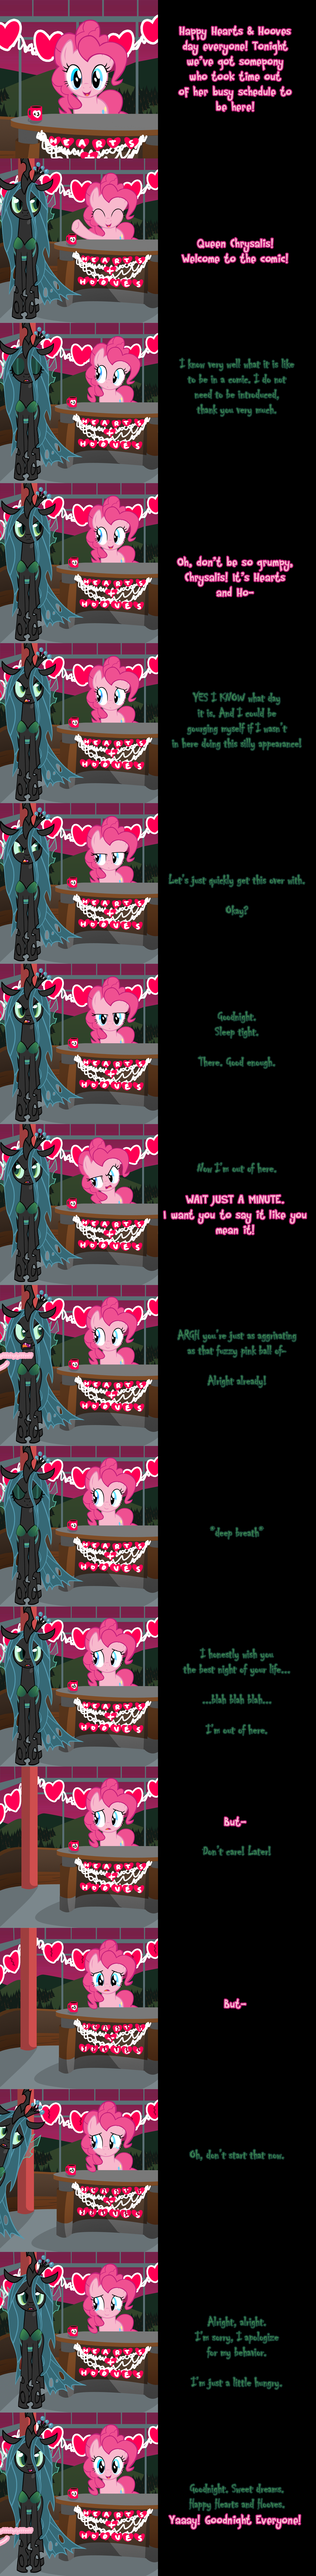 Pinkie Pie Says Goodnight - Feeding Frenzy by Undead-Niklos